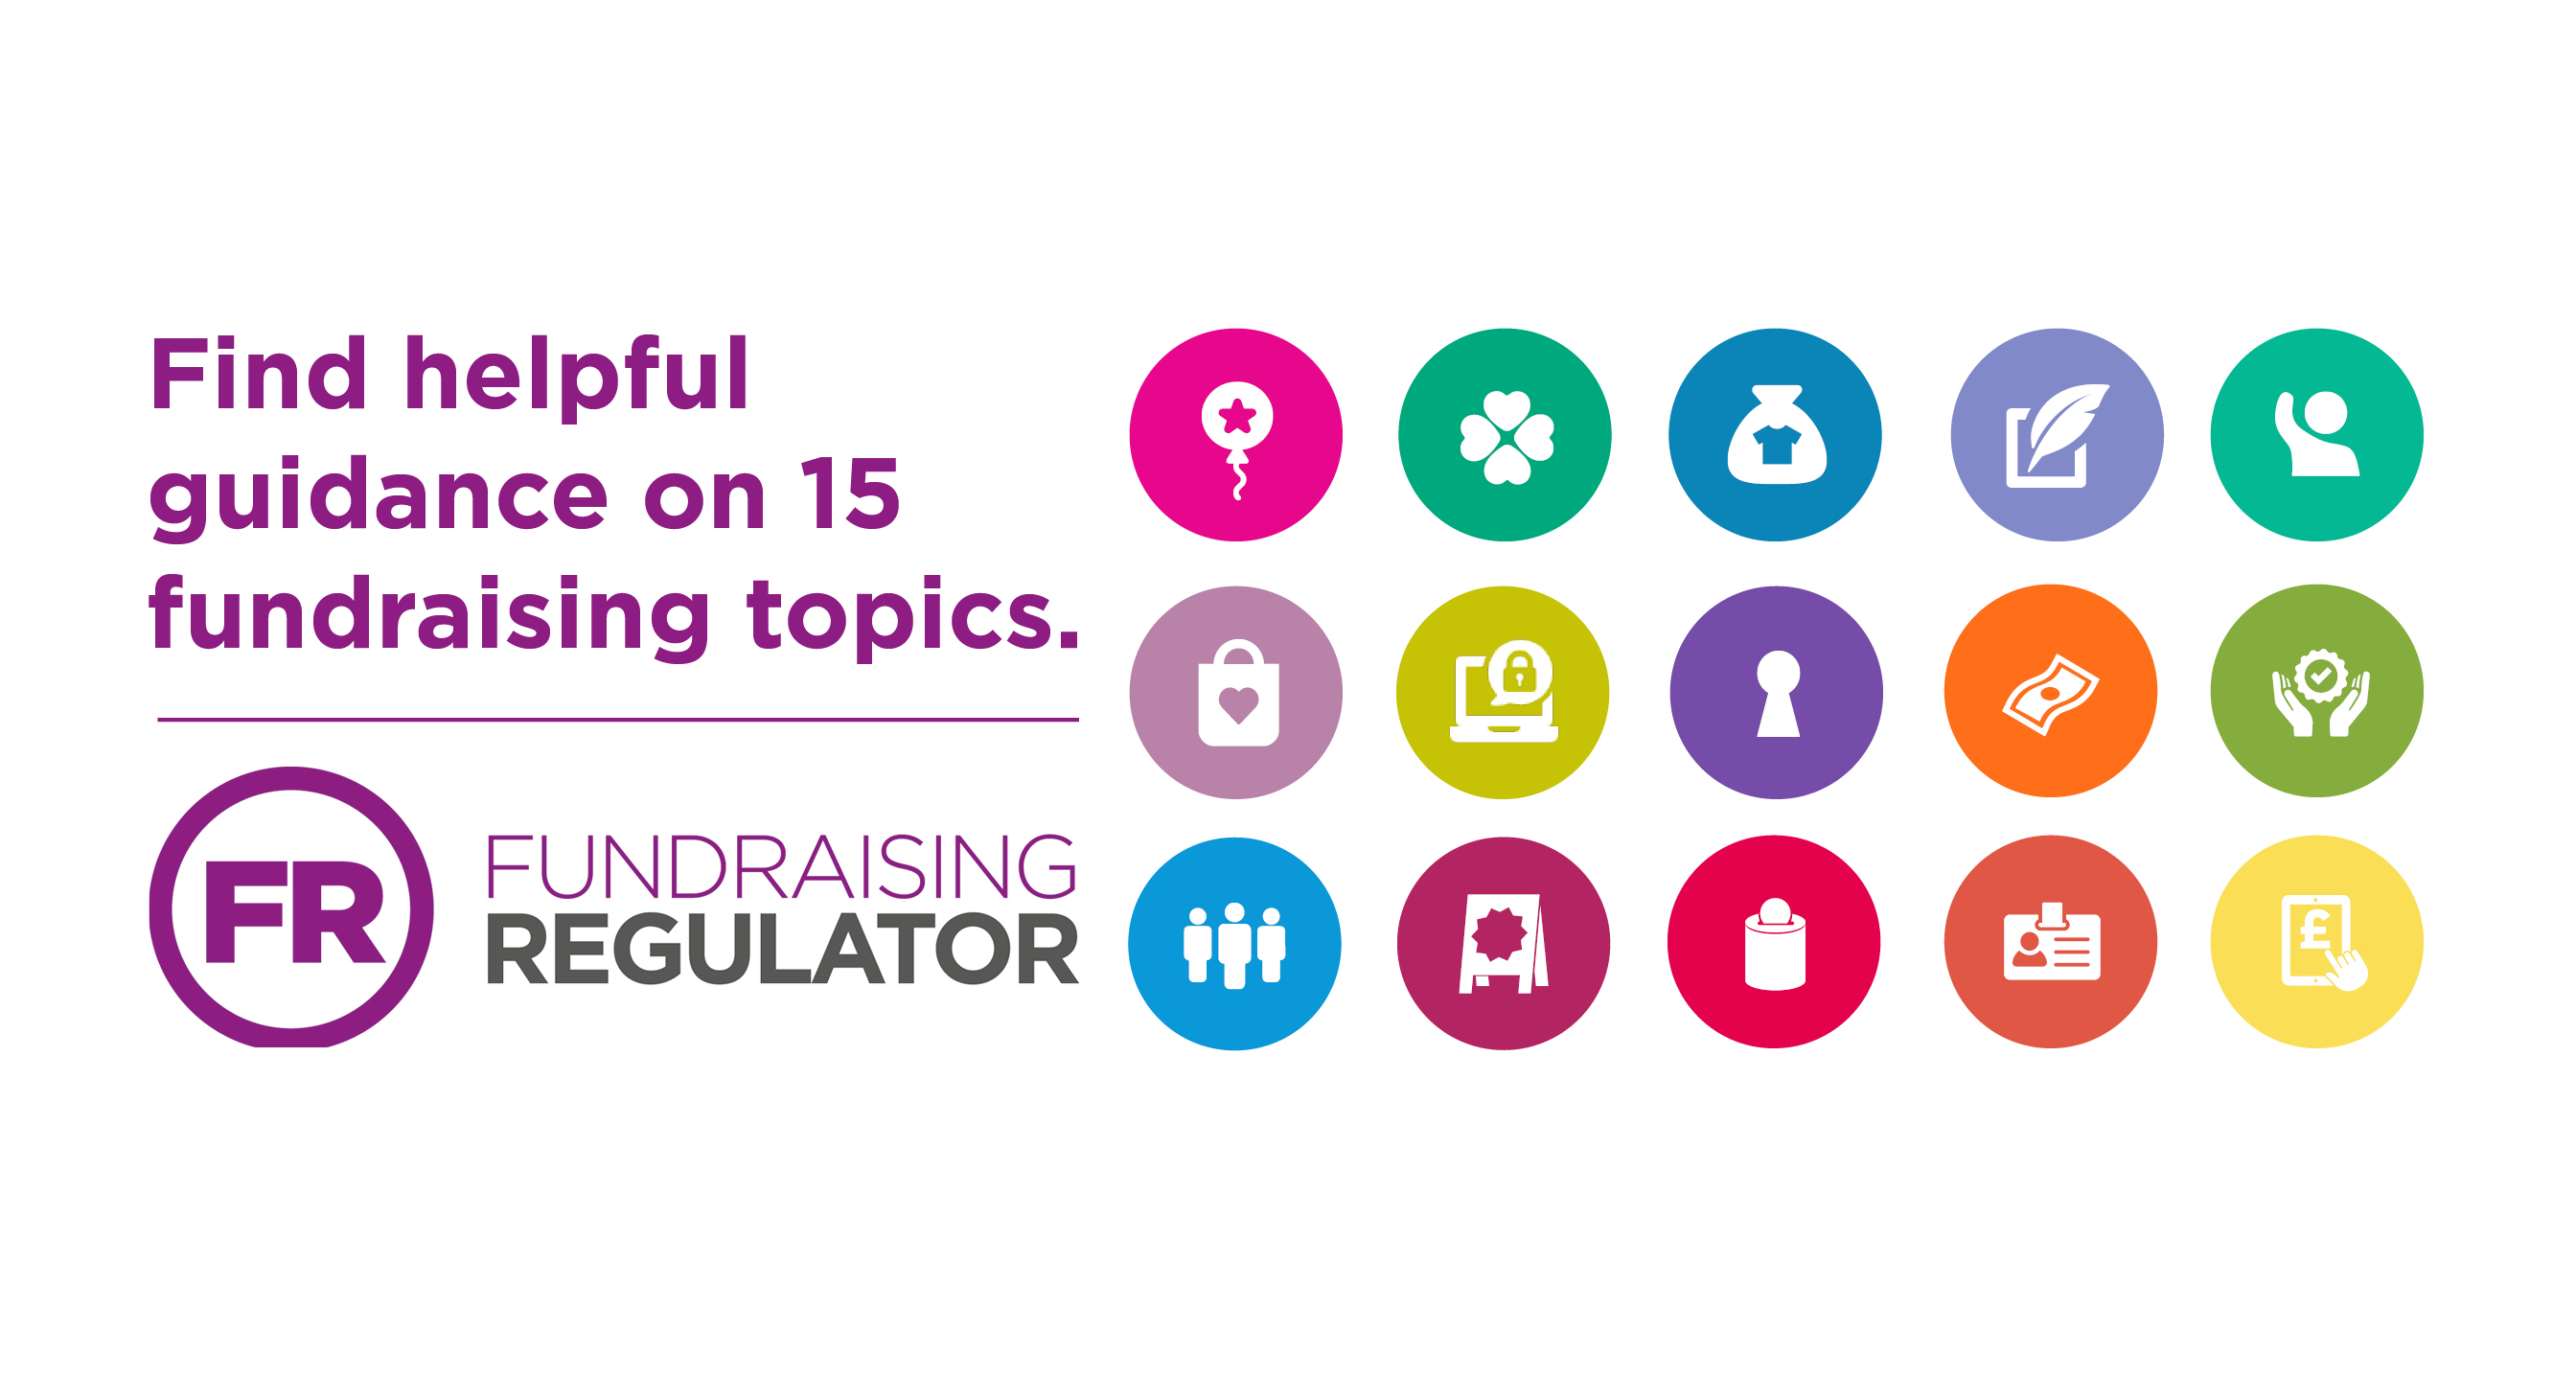 Find helpful guidance on 15 different fundraising topics